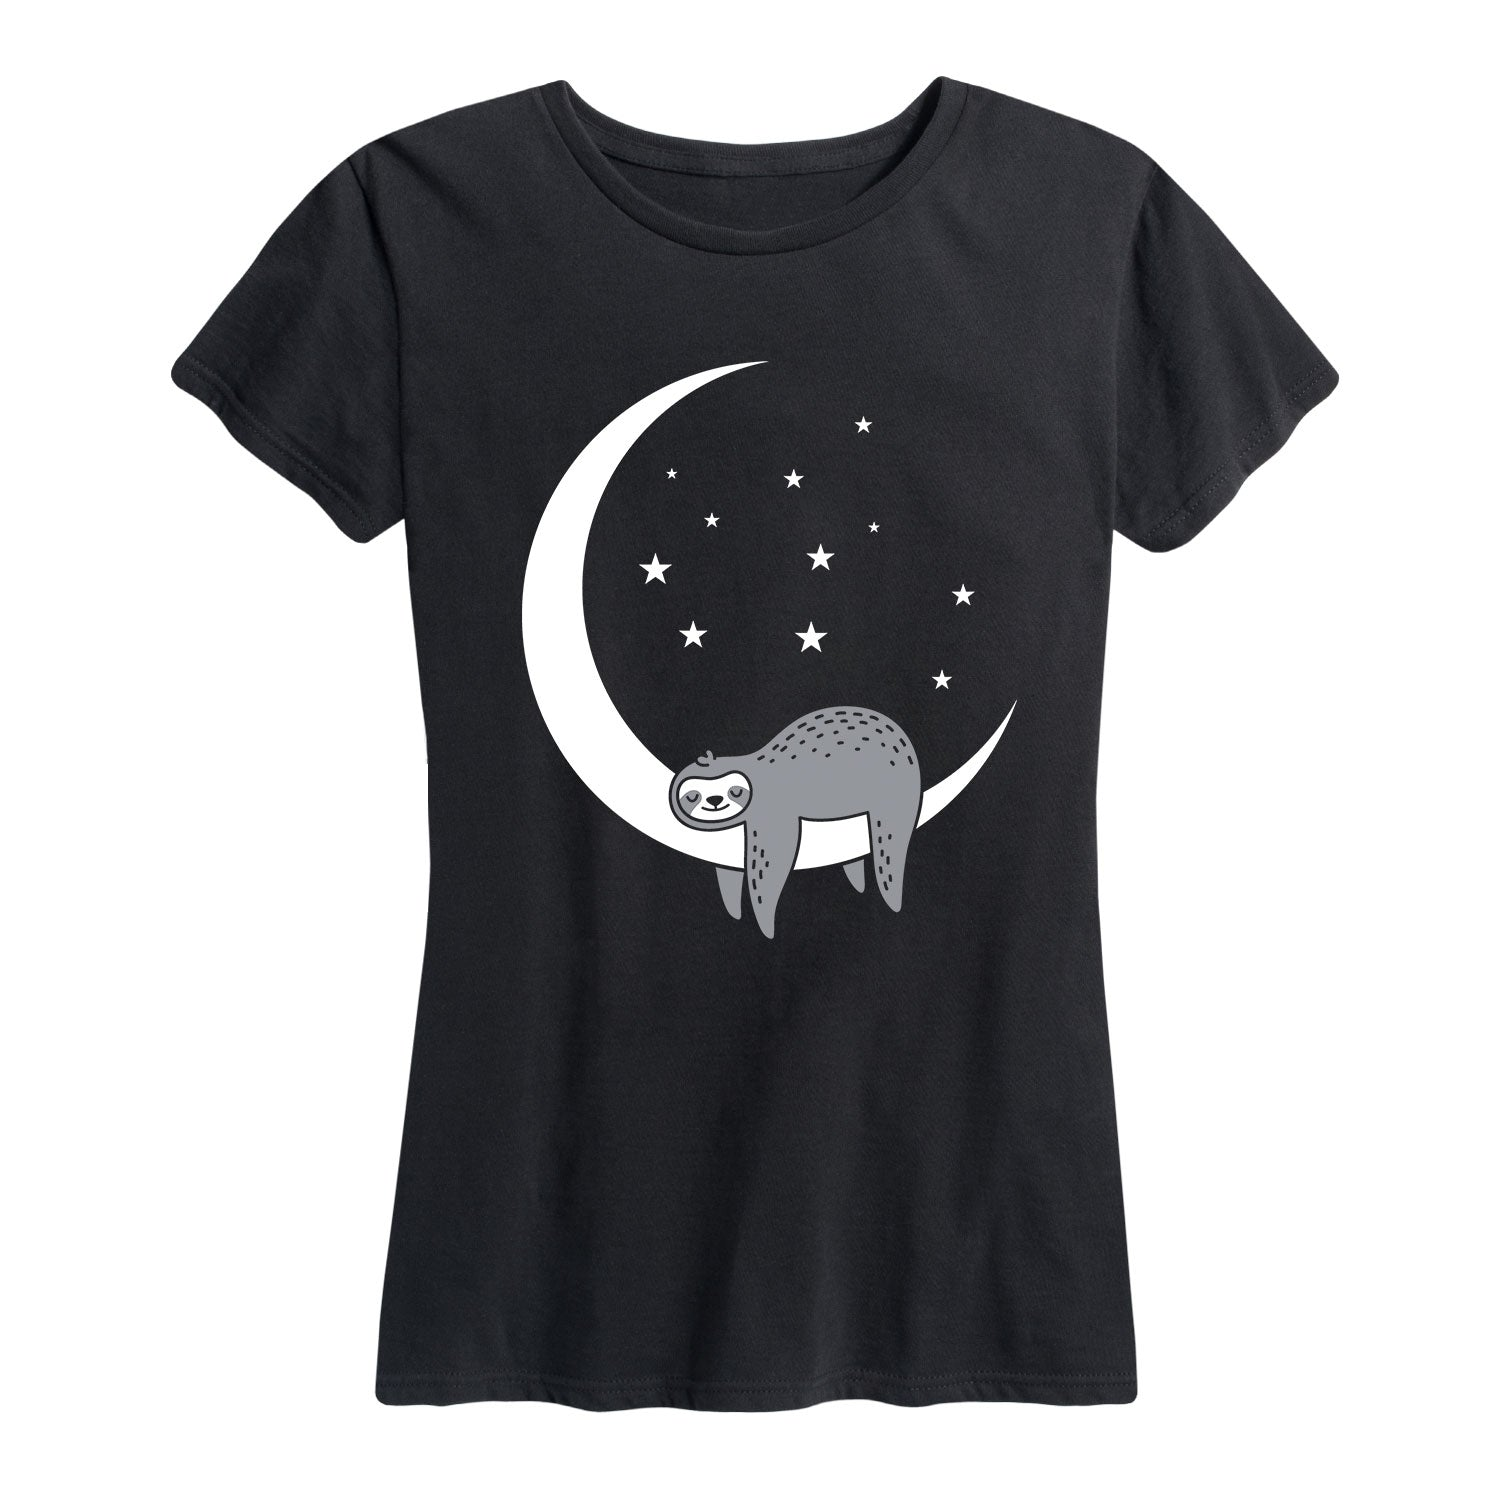 Sleeping Moon Sloth - Women's Short Sleeve T-Shirt